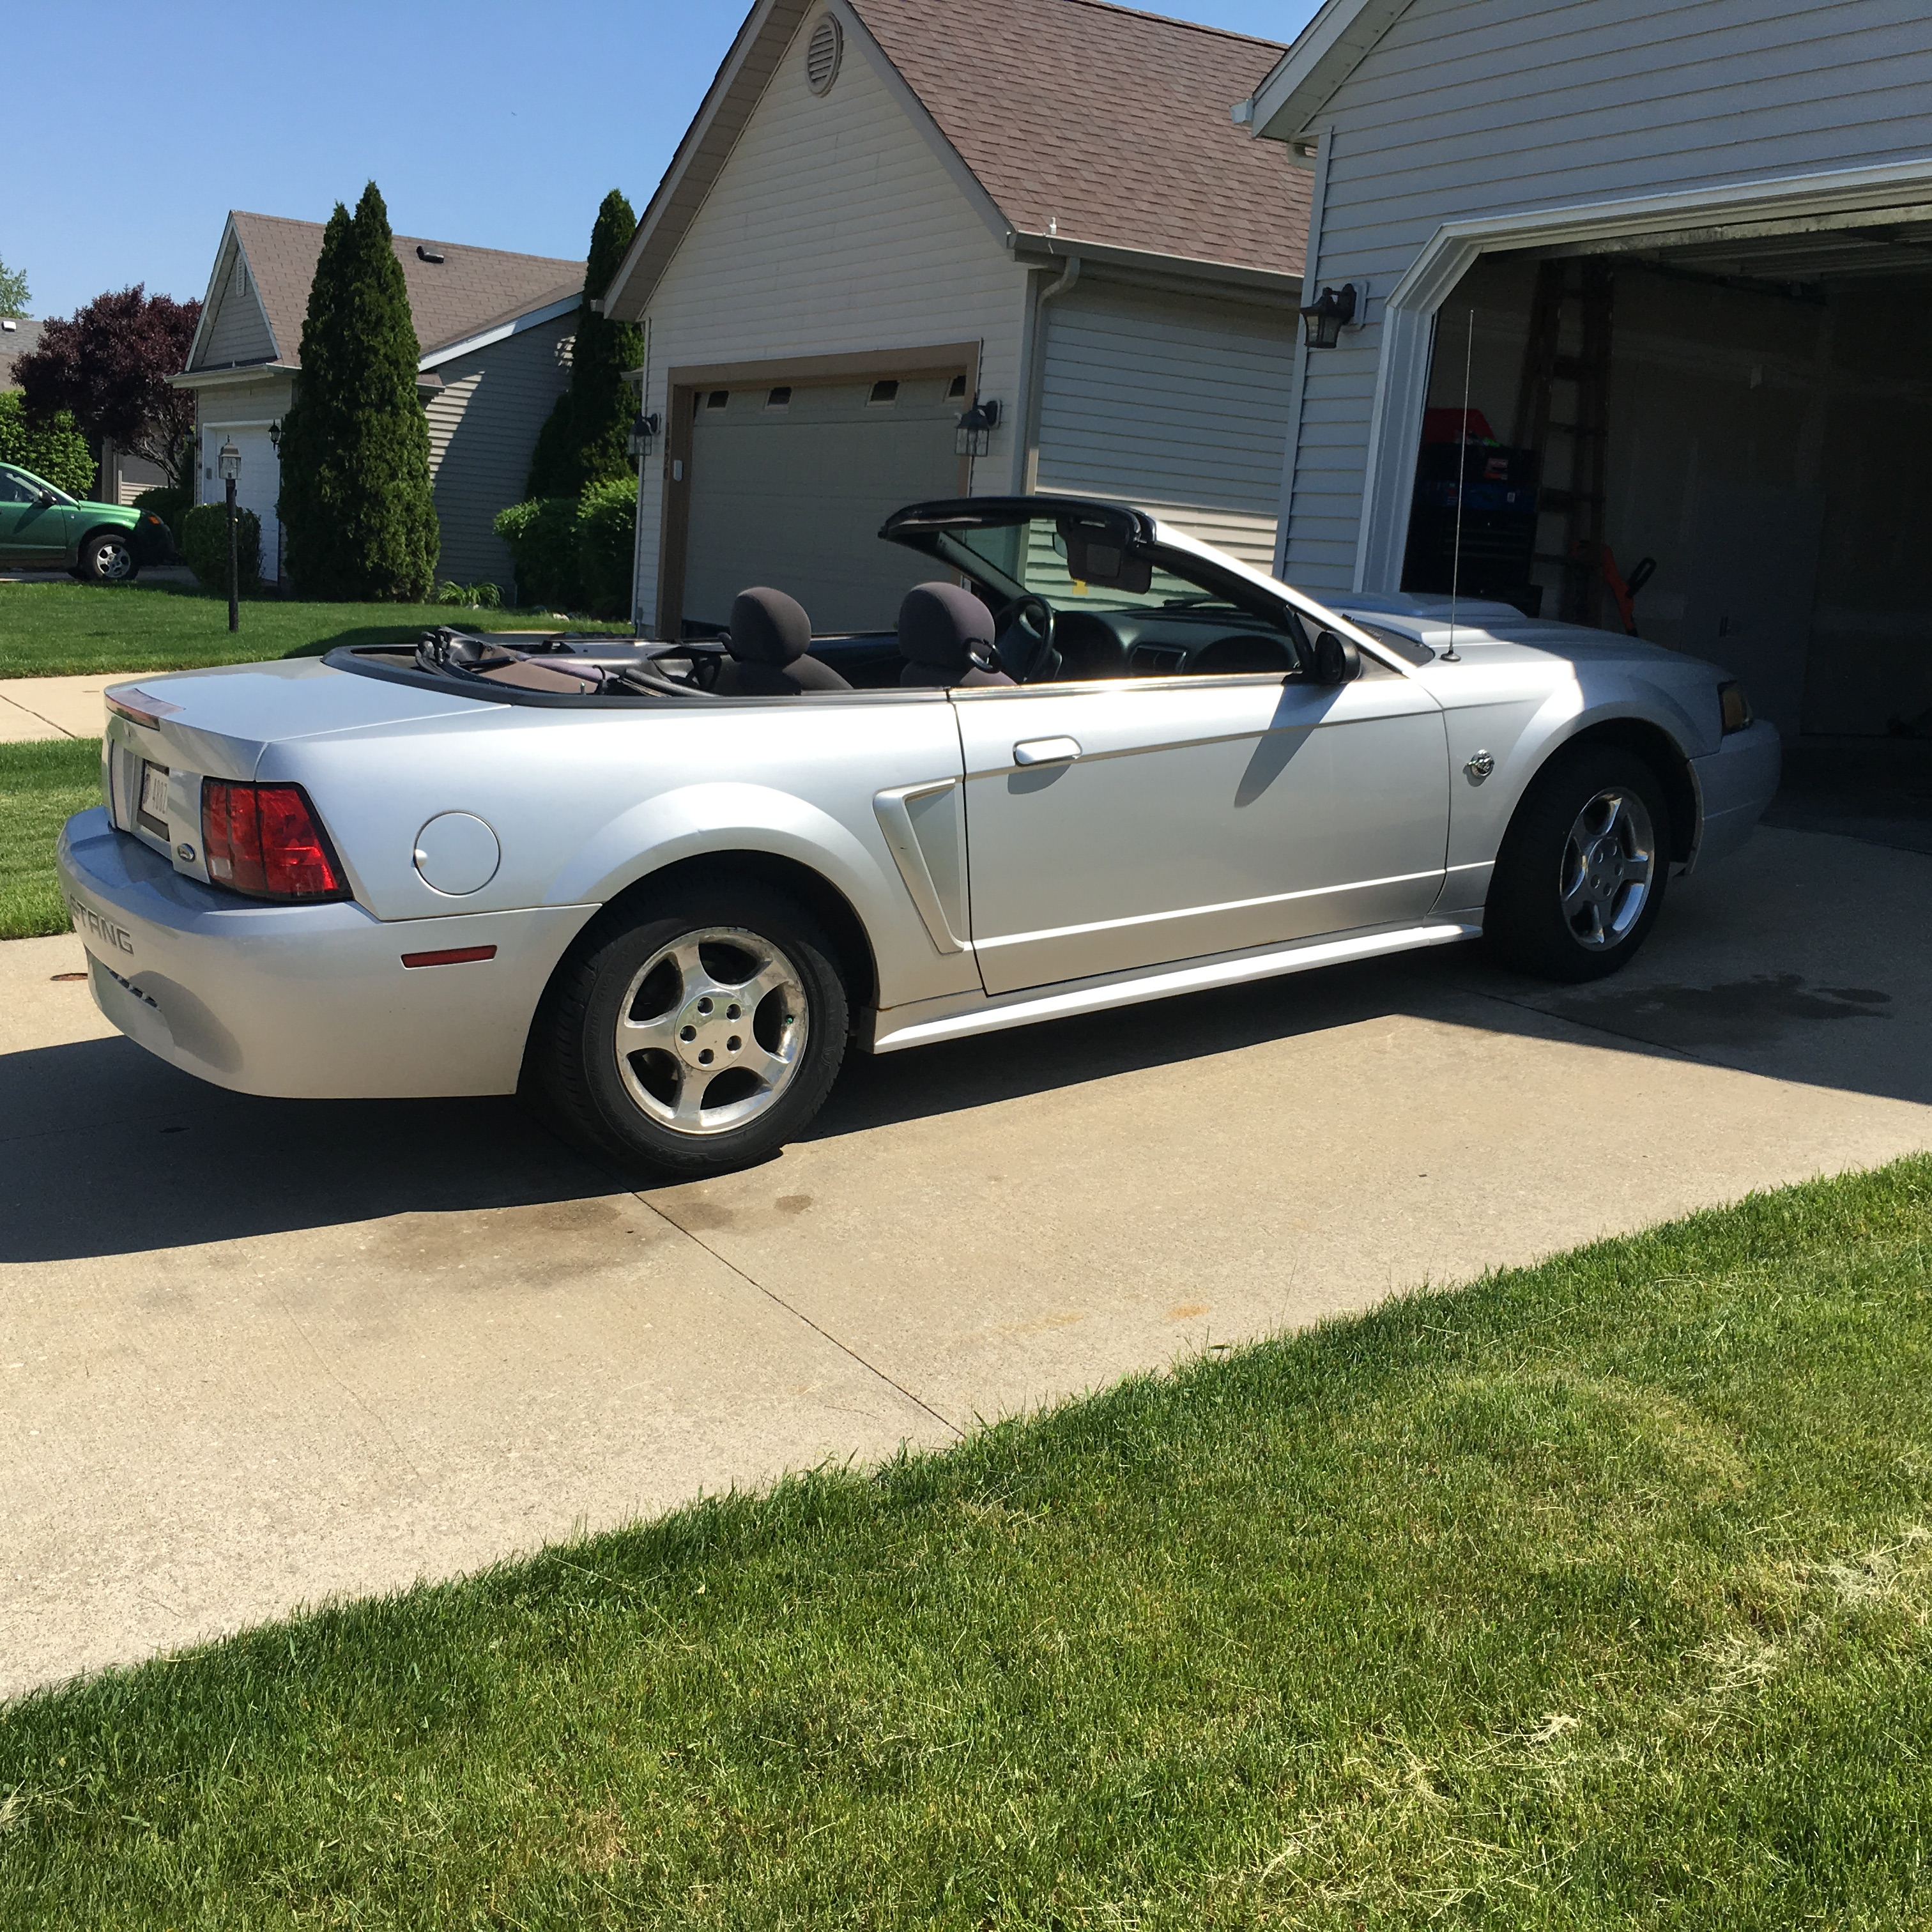 2004 Ford Mustang Convertible 3.9L V6